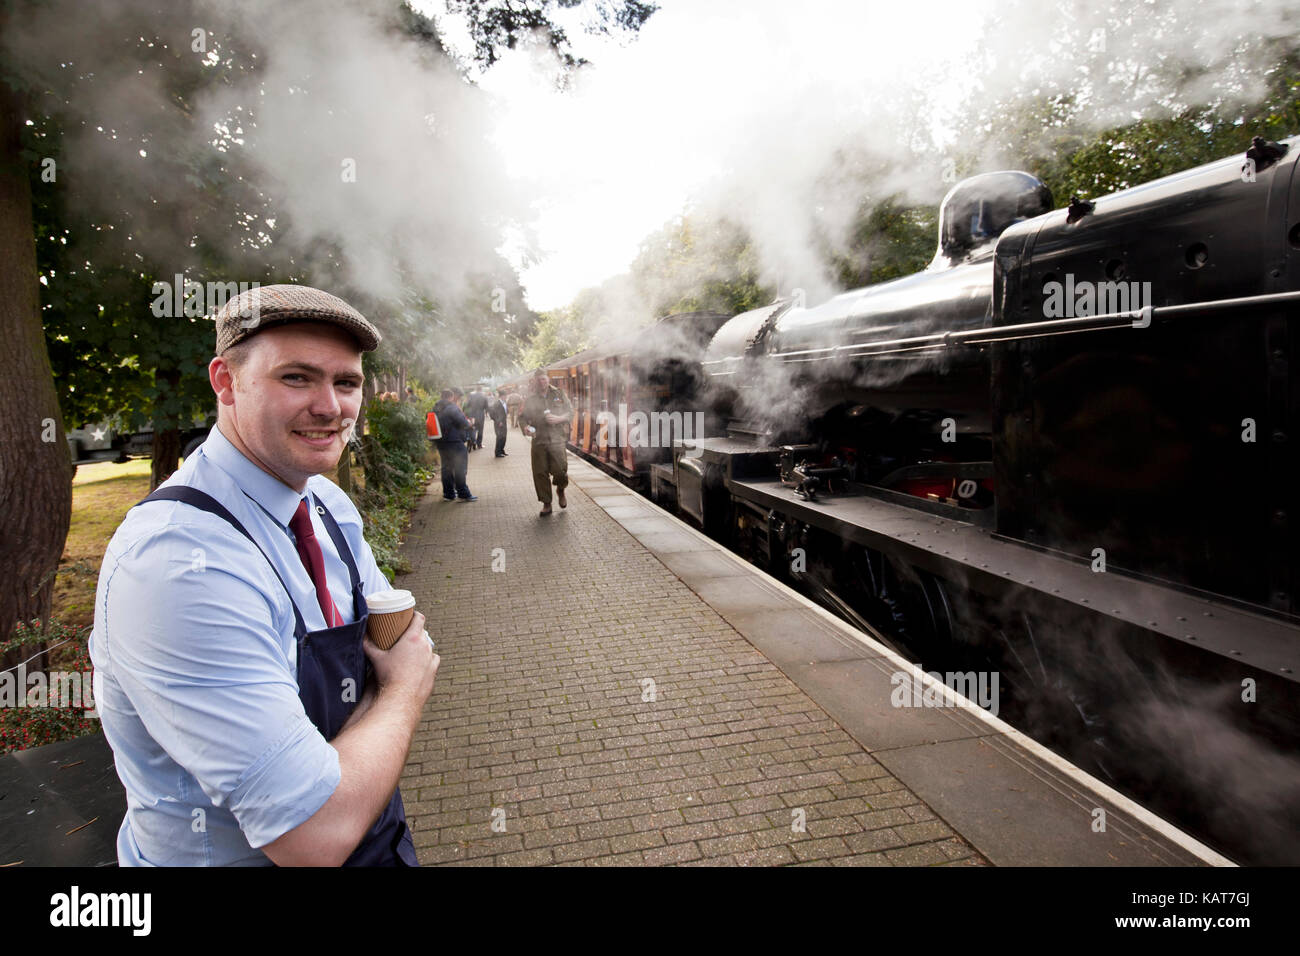 North Norfolk Railway engineer takes a break at Holt sation on the Poppy Line during a 1940s festival. - Stock Image